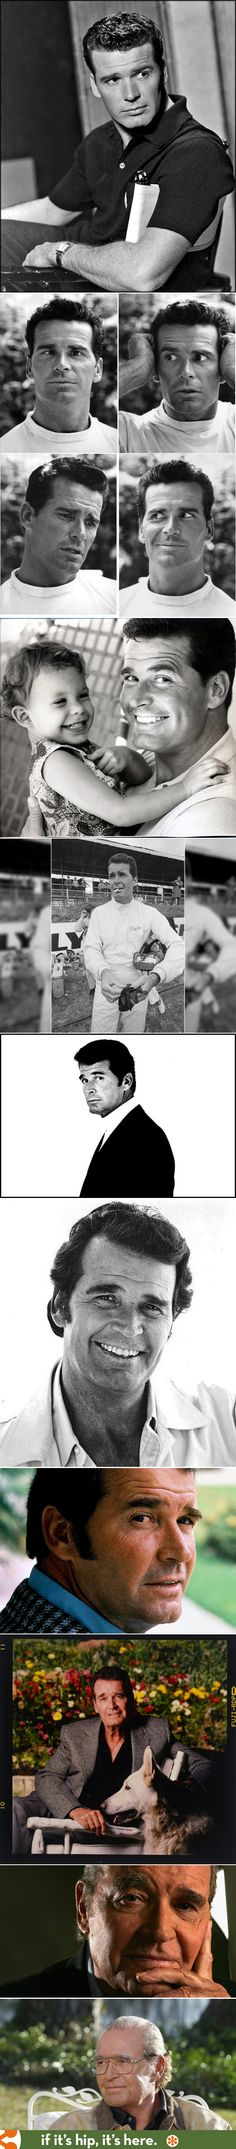 James Garner, 1928-2014. See the complete tribute post at http://www.ifitshipitshere.com/marvelously-manly-james-garner-passed-away/